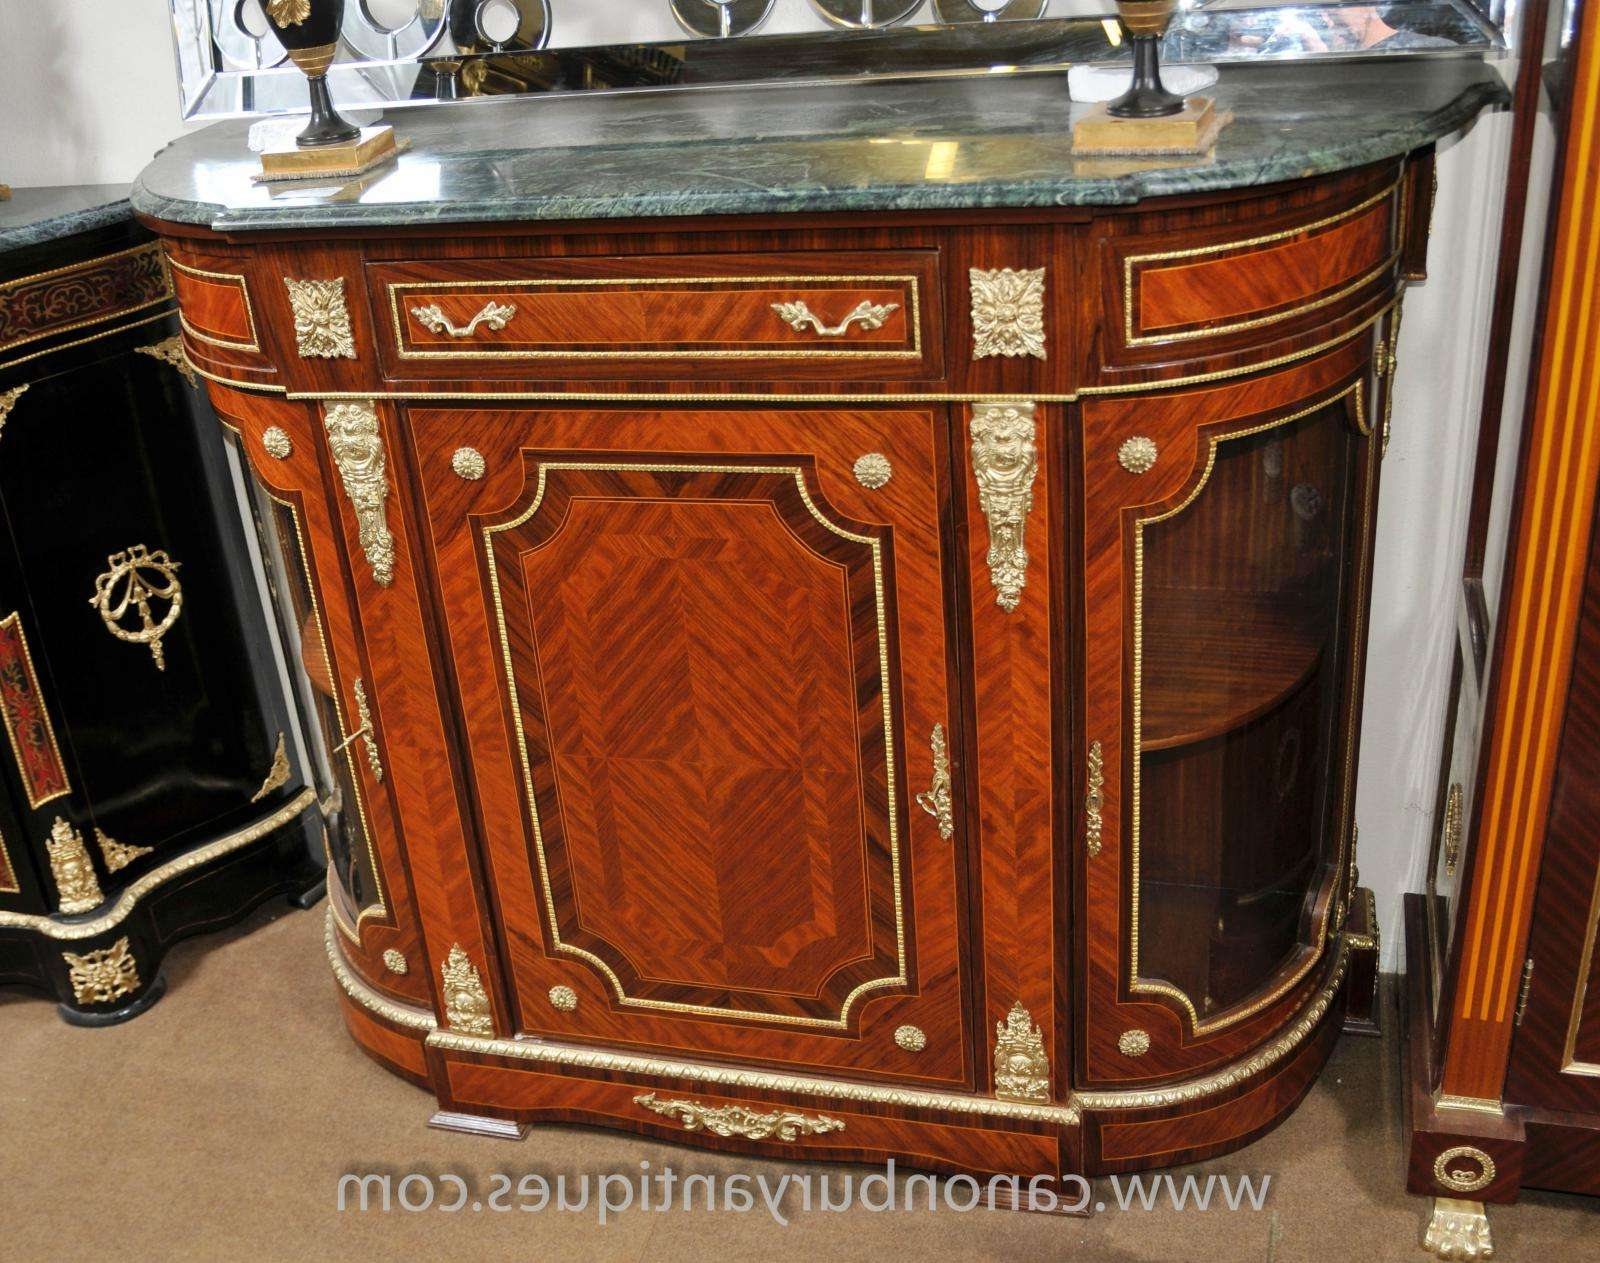 French Empire Cabinet Sideboard Kingwood Marble Top Credenza Intended For Sideboards With Marble Tops (View 10 of 20)